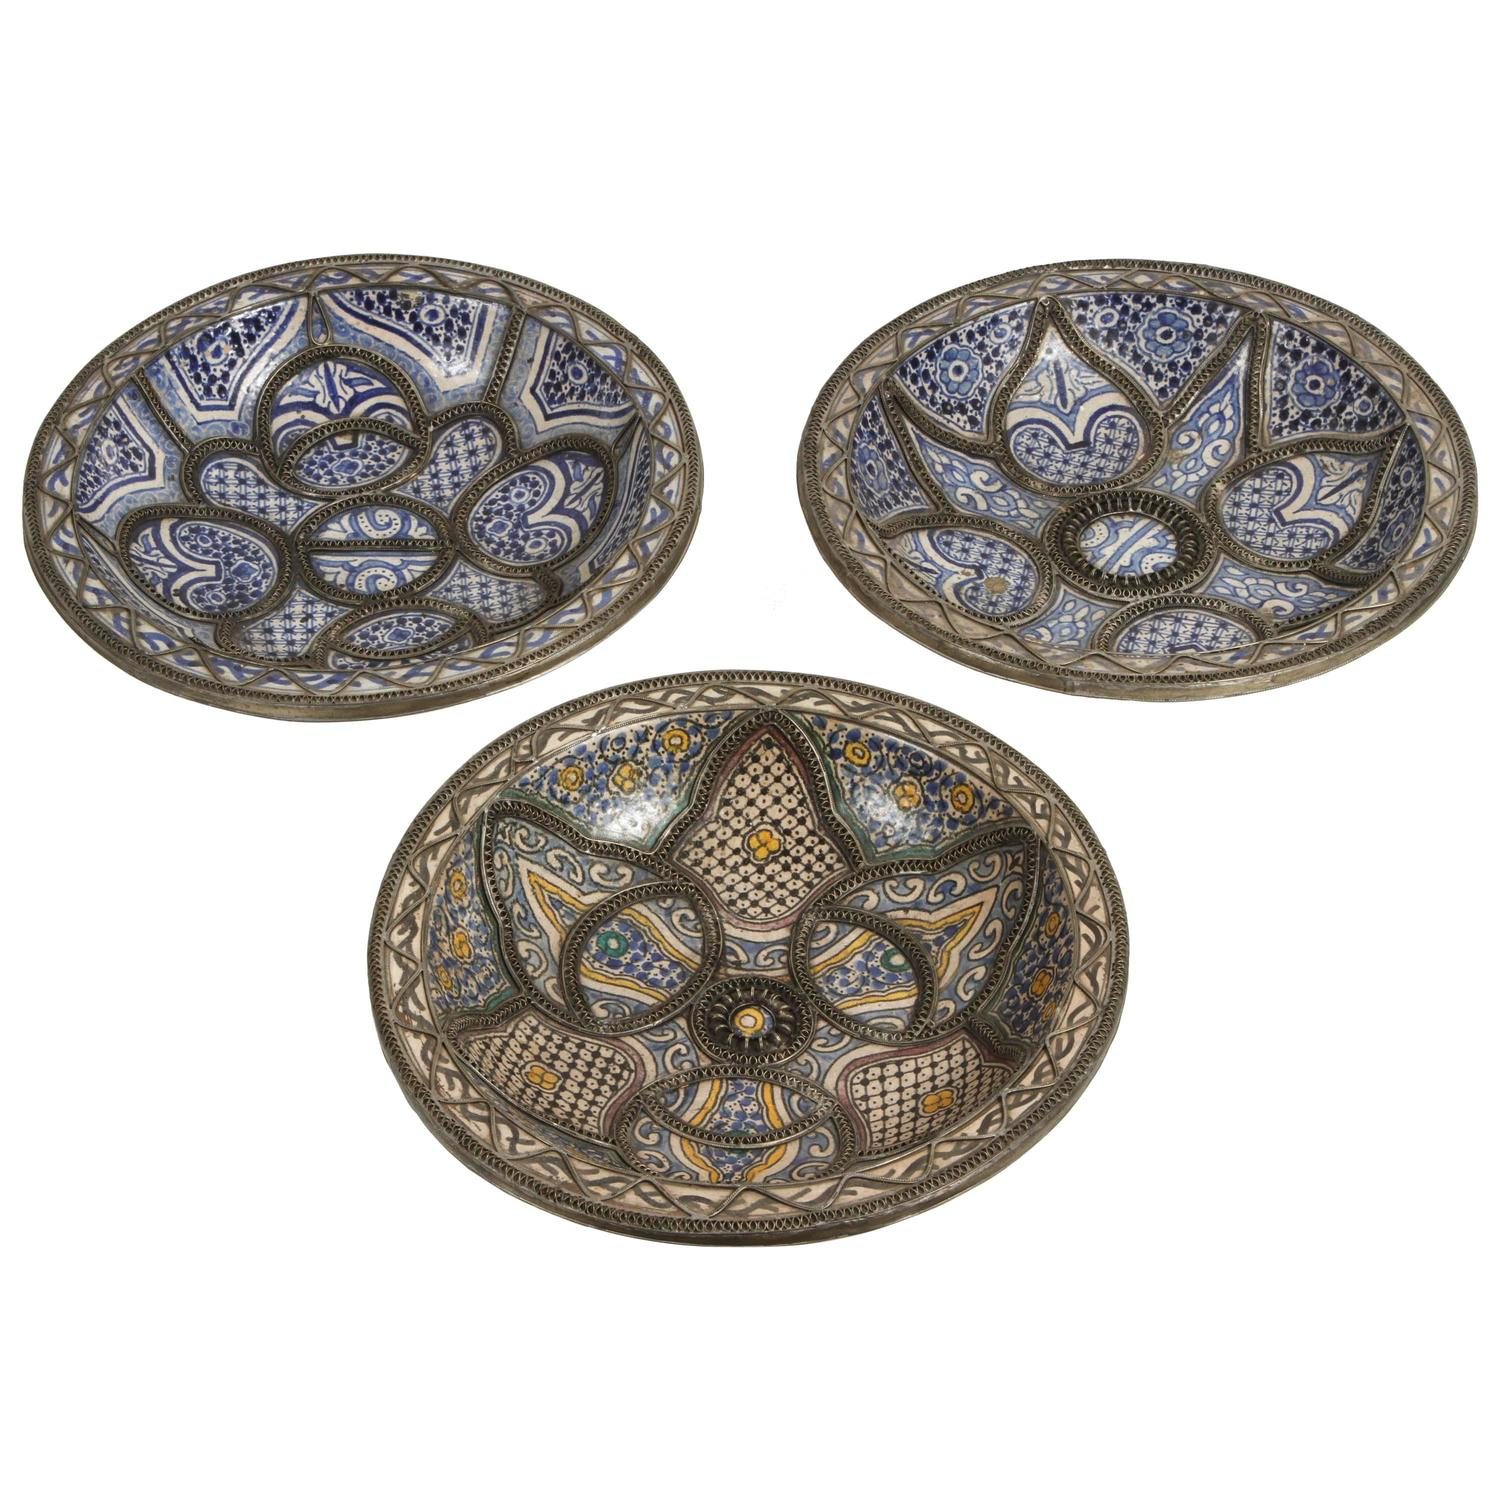 Large Decorative Ceramic Plates Large Decorative Ceramic Plates From Fez For Sale At 1Stdibs